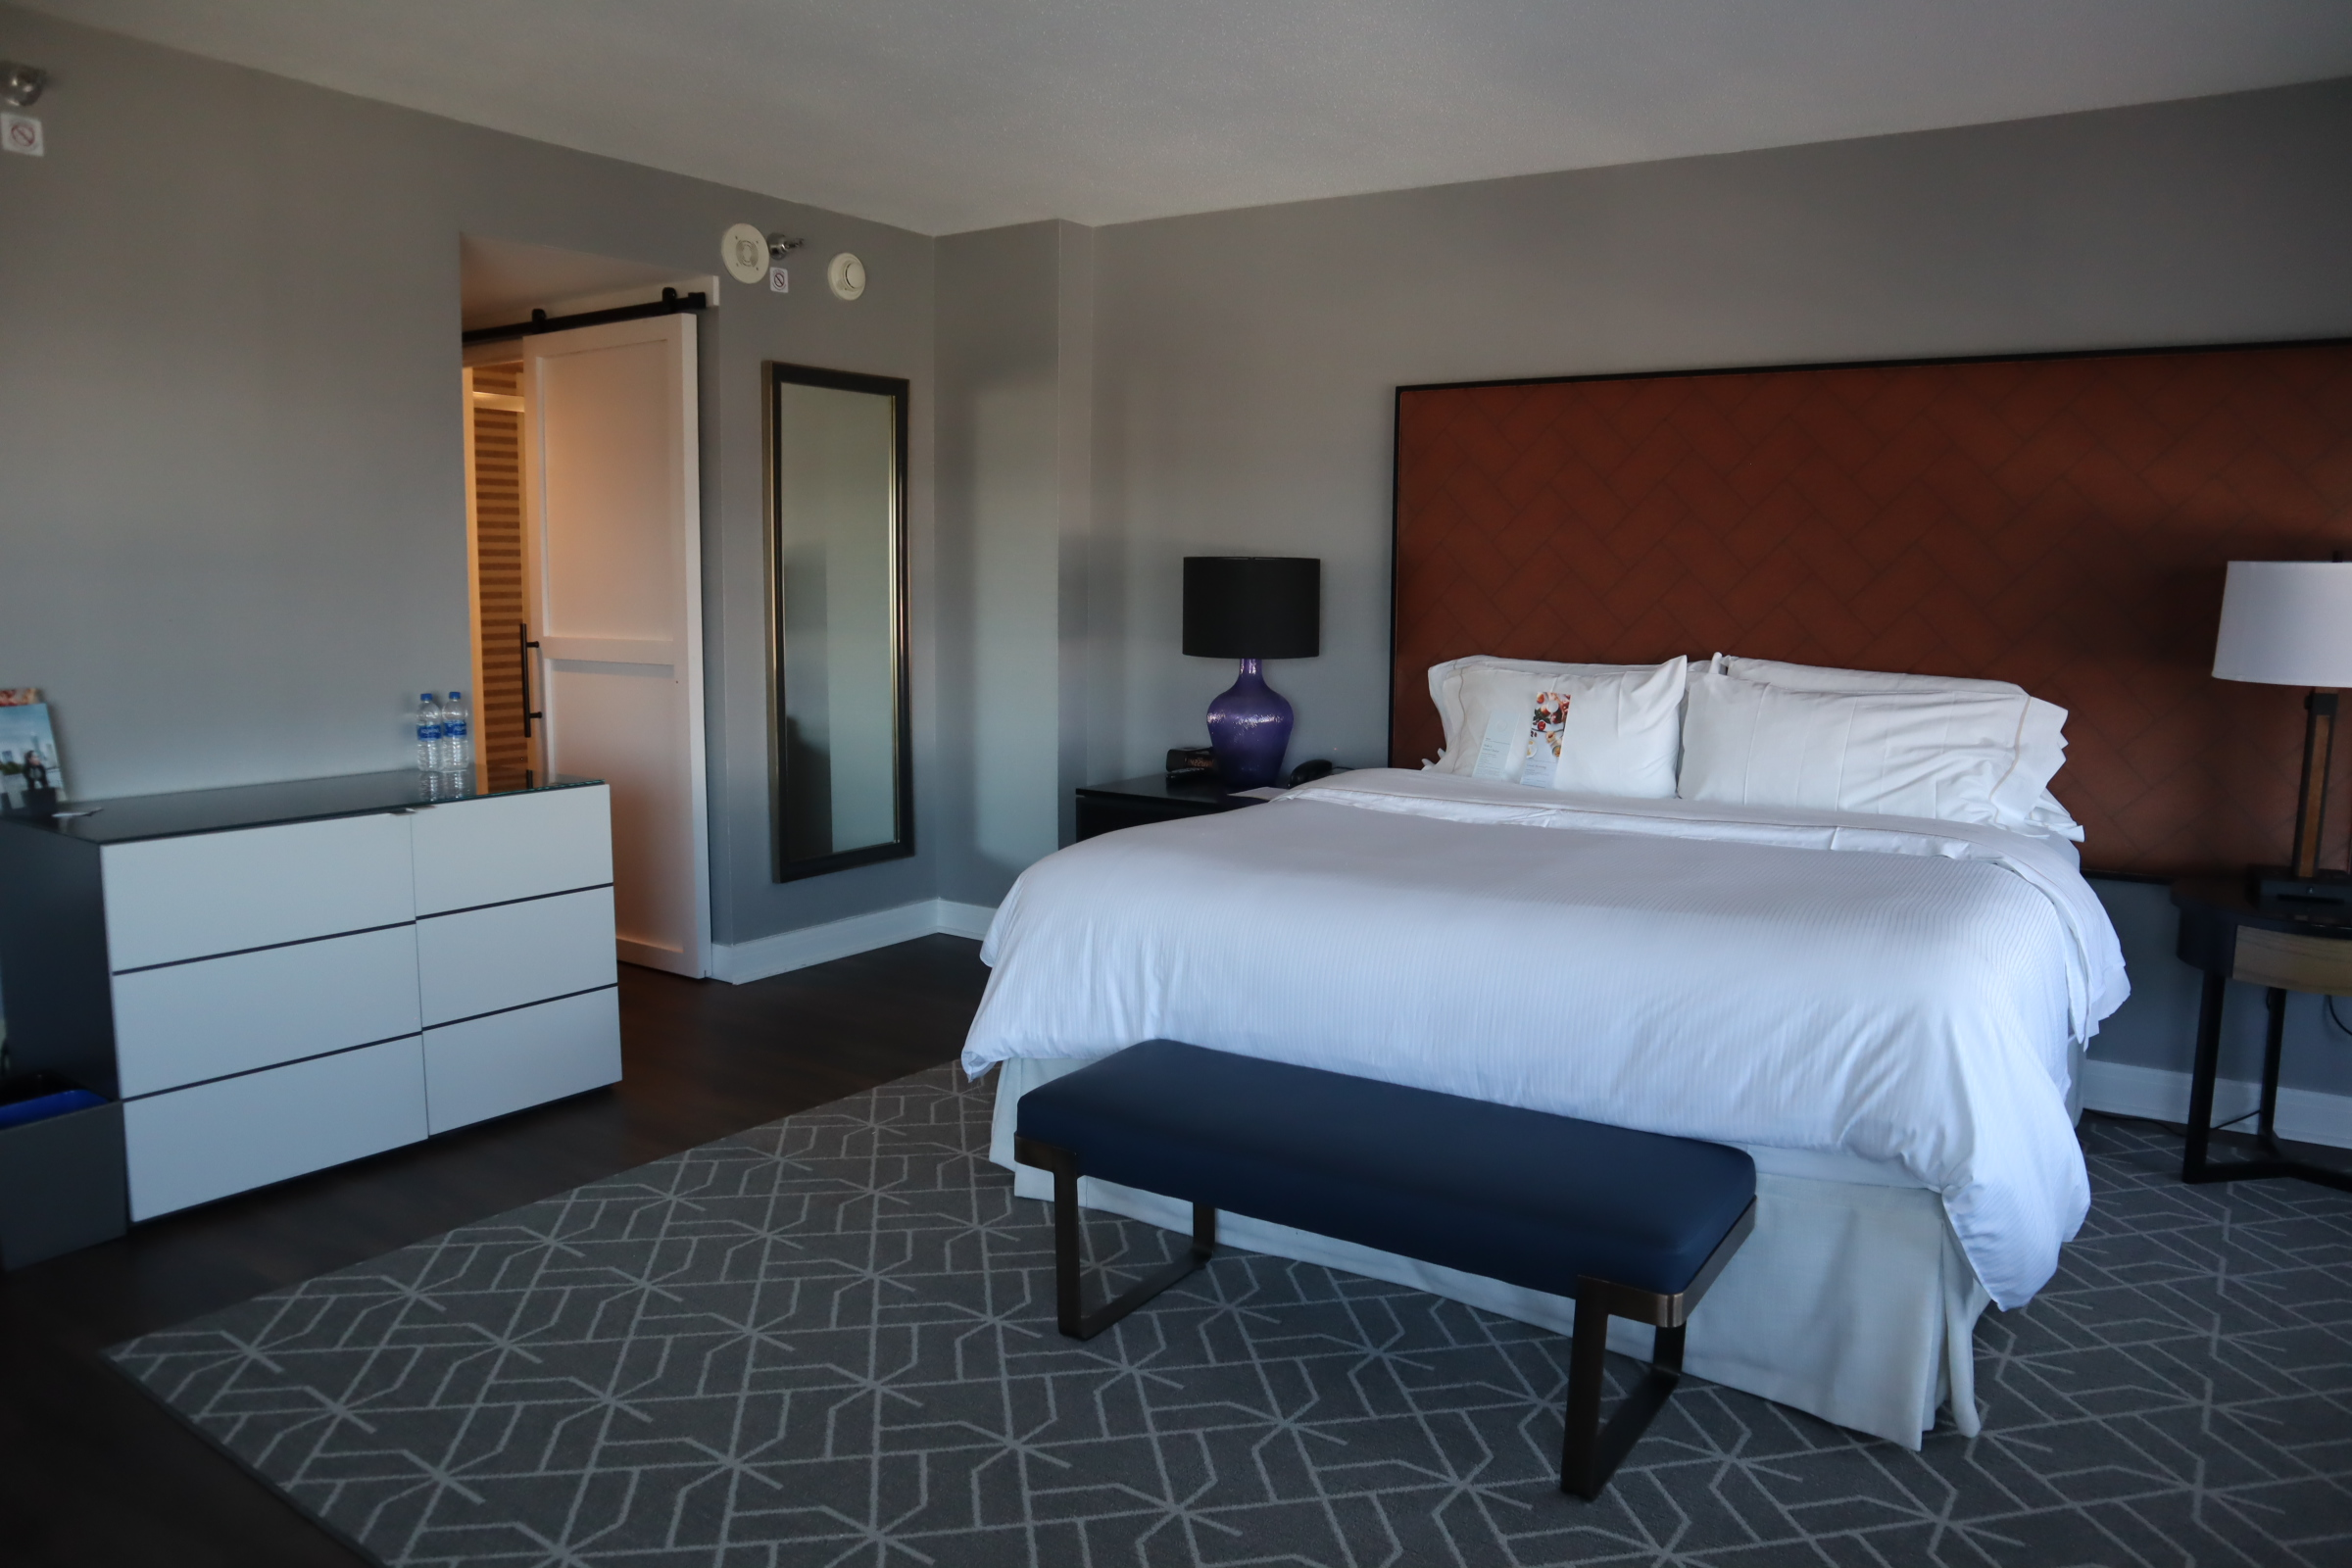 Studio Suite, Westin Copley Place Boston